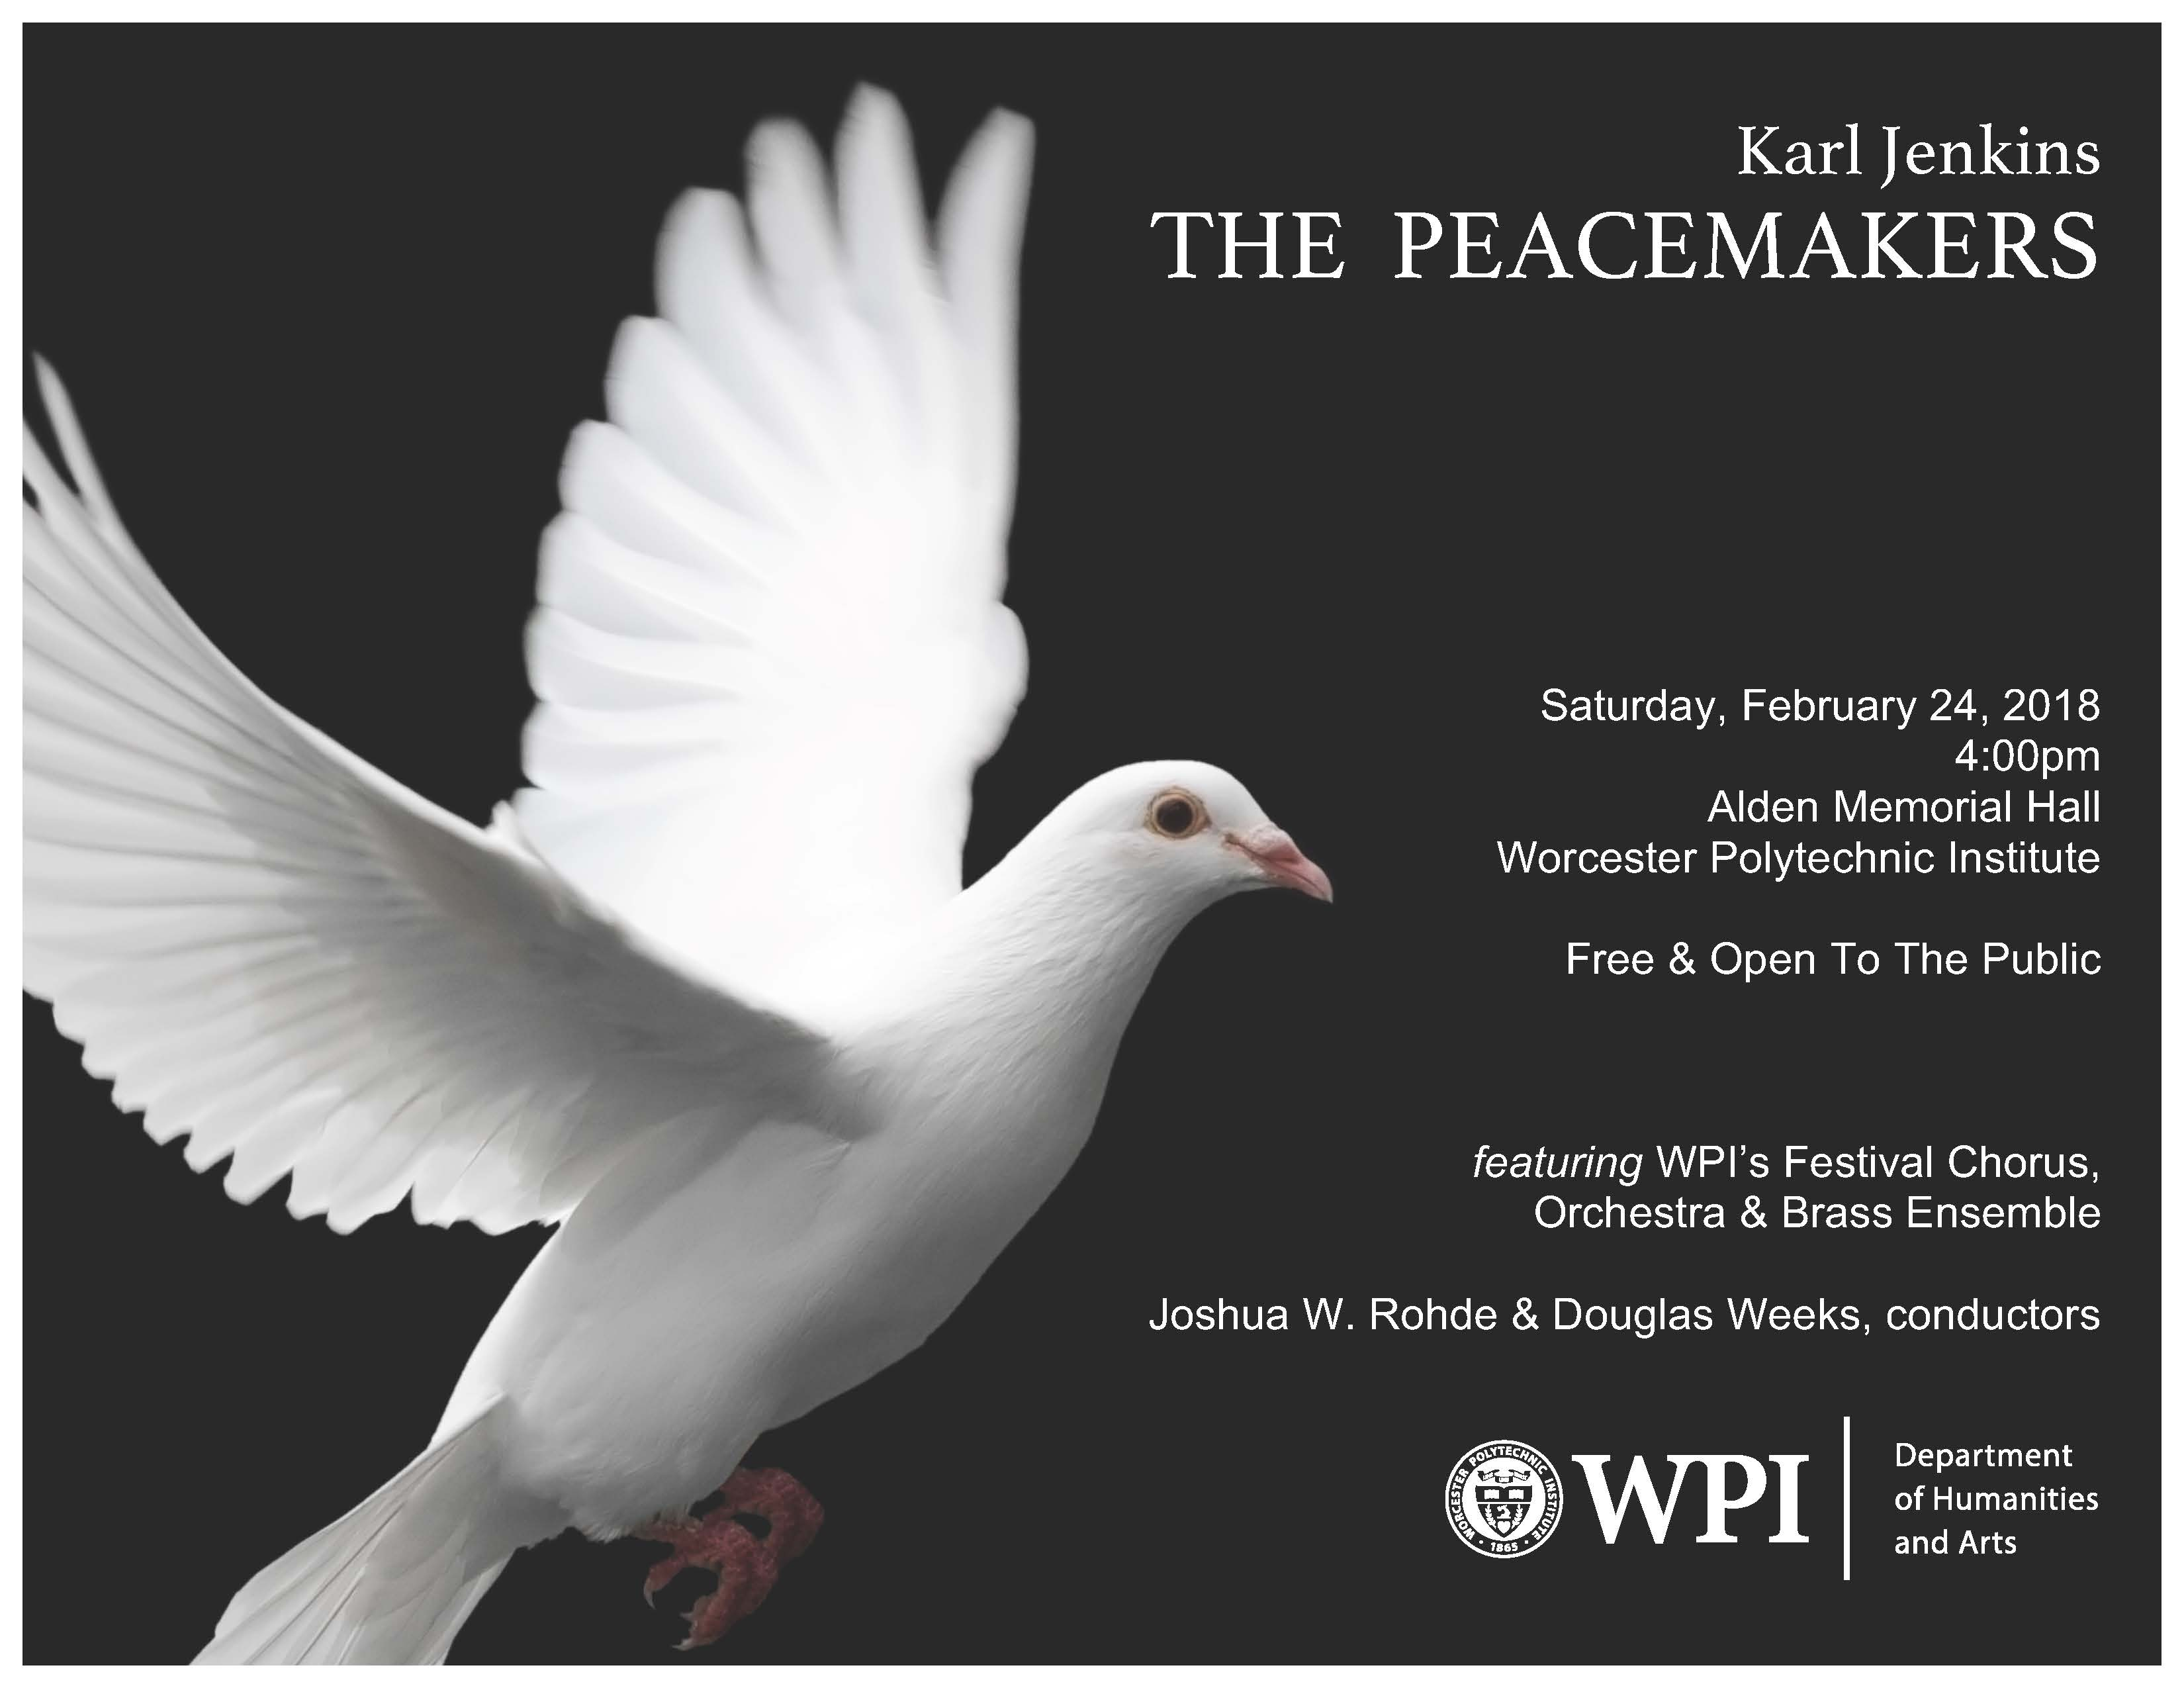 Karl Jenkins The Peacemakers alt